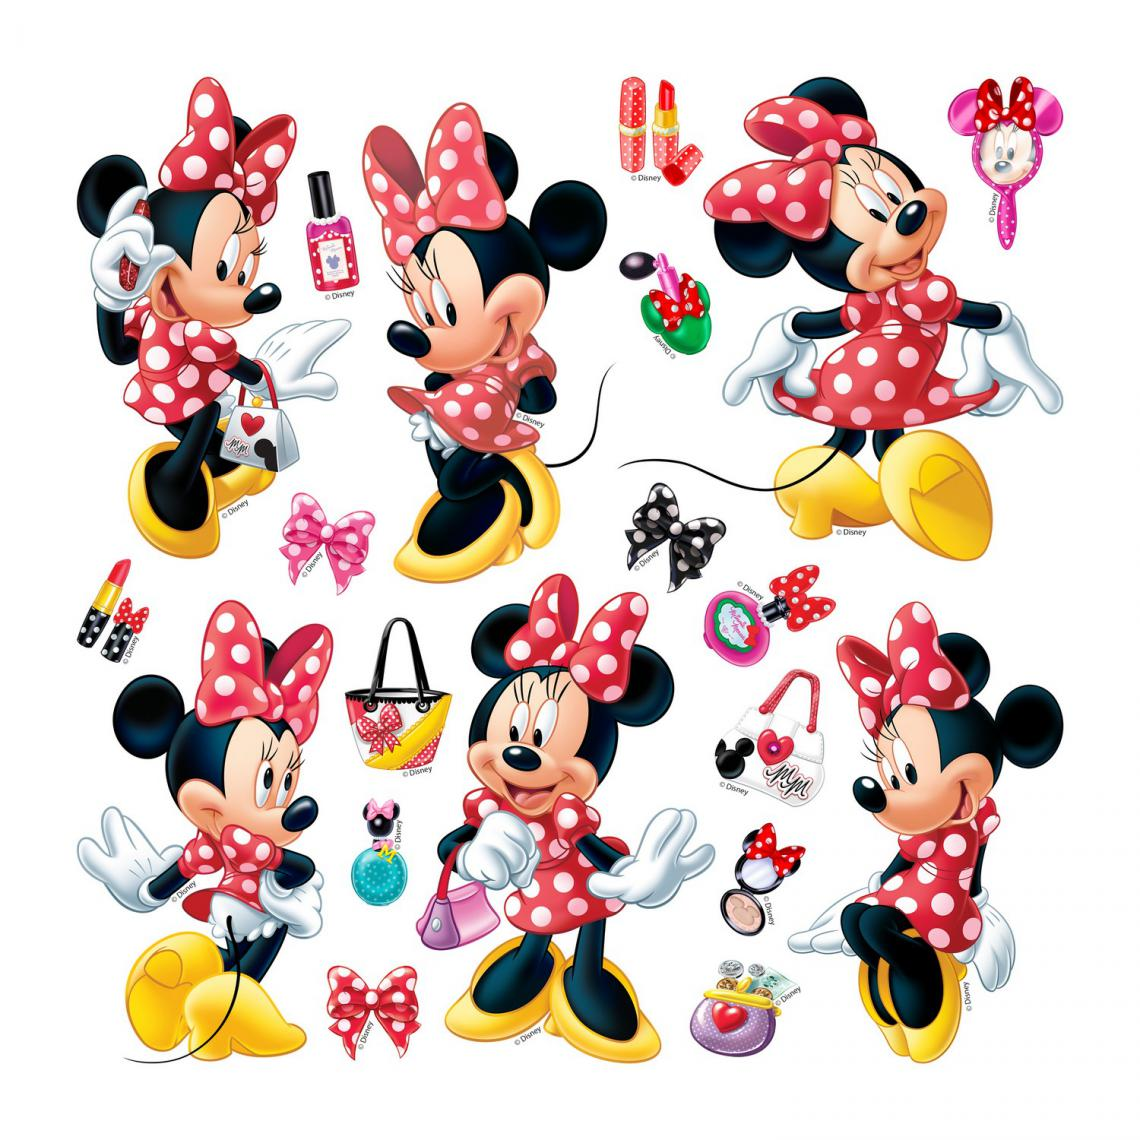 Ag Art Minis Stickers Disney - Minnie Mouse - 30 CM x 30 CM